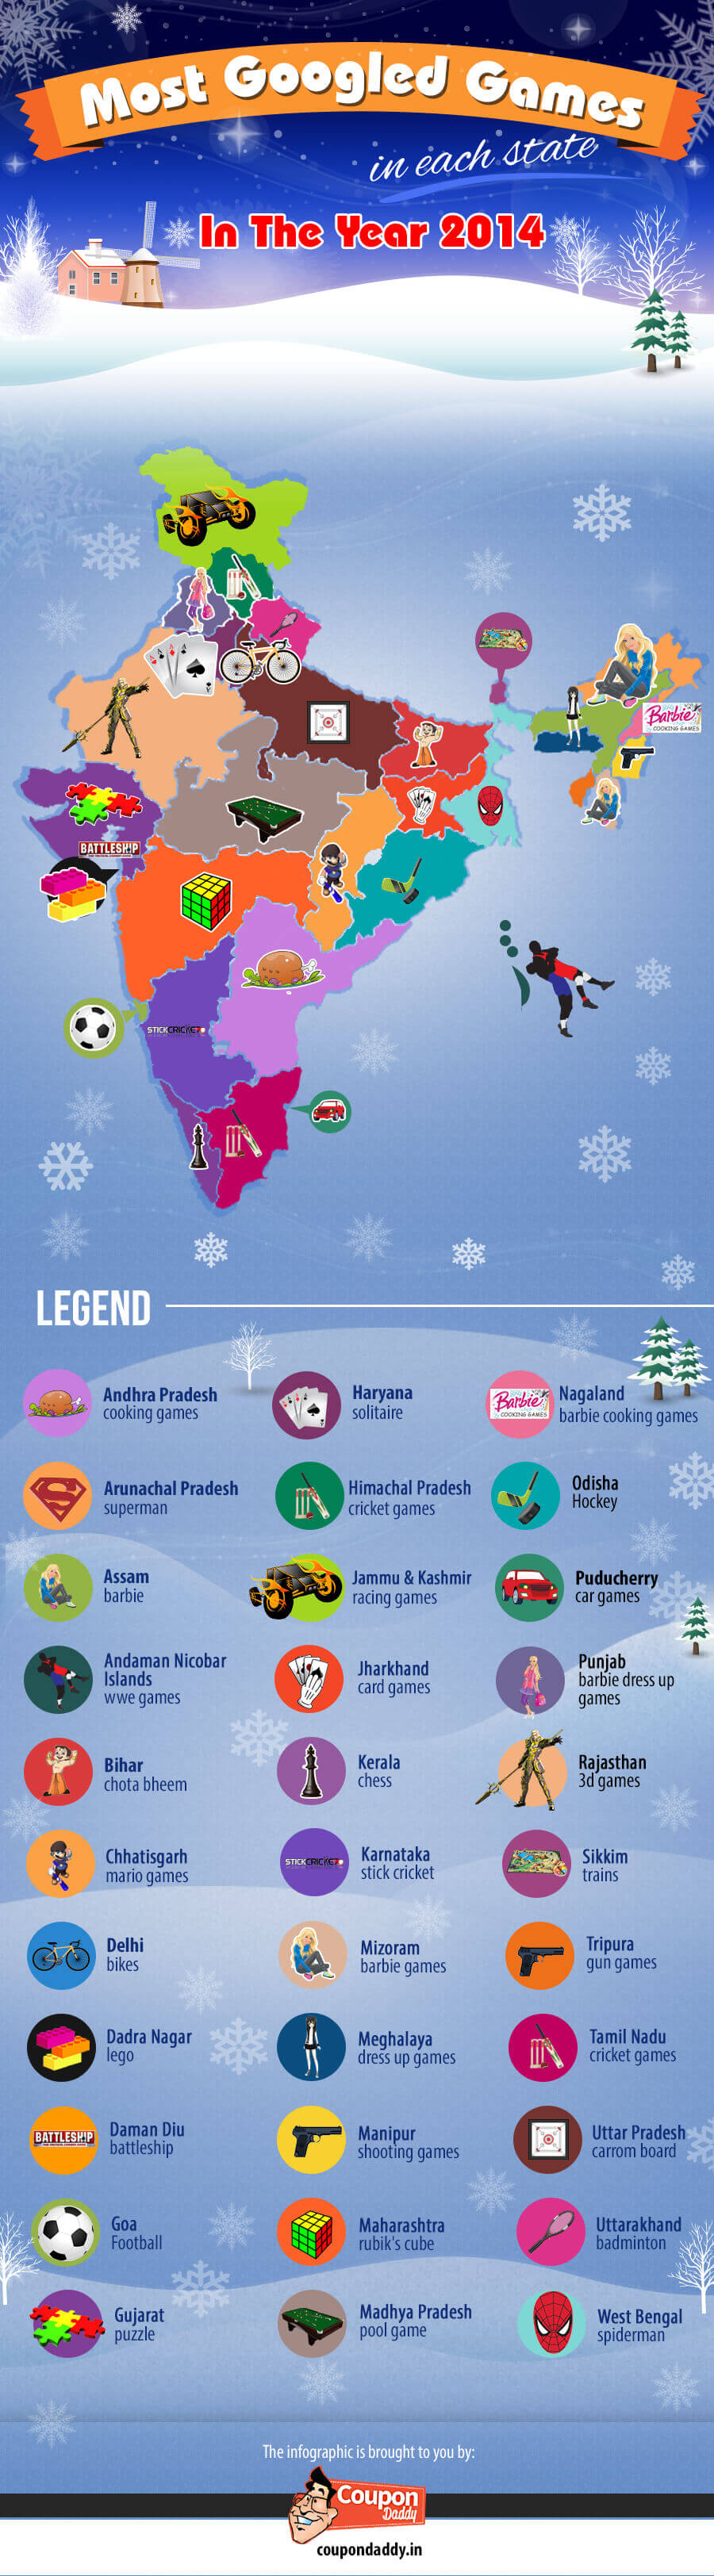 Top Googled Games in Each State of India for 2014 - An Infographic from CouponDaddy.in